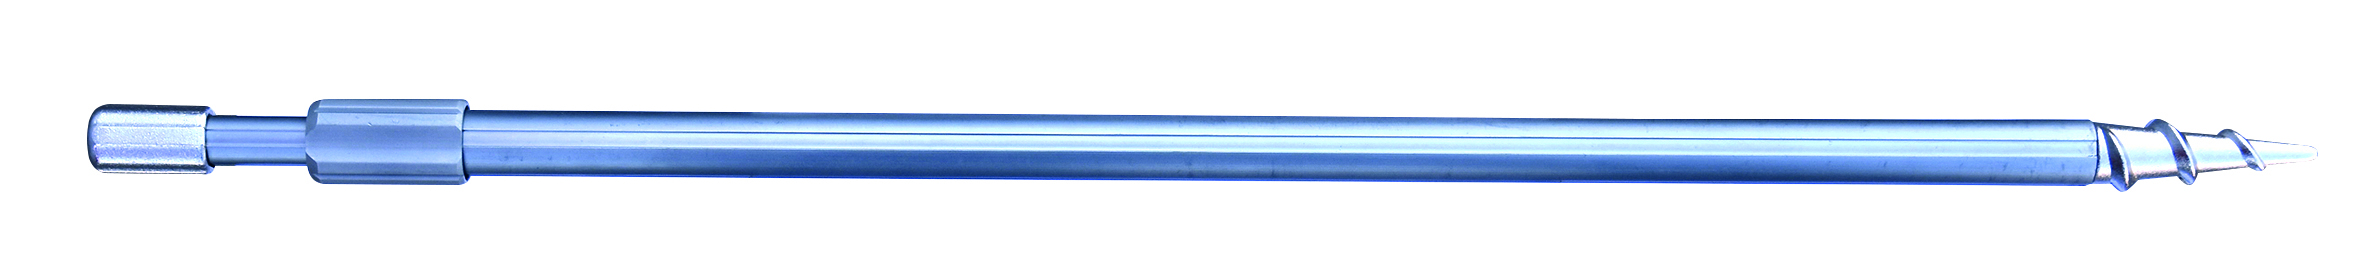 Deluxe Bank Stick 40-70cm